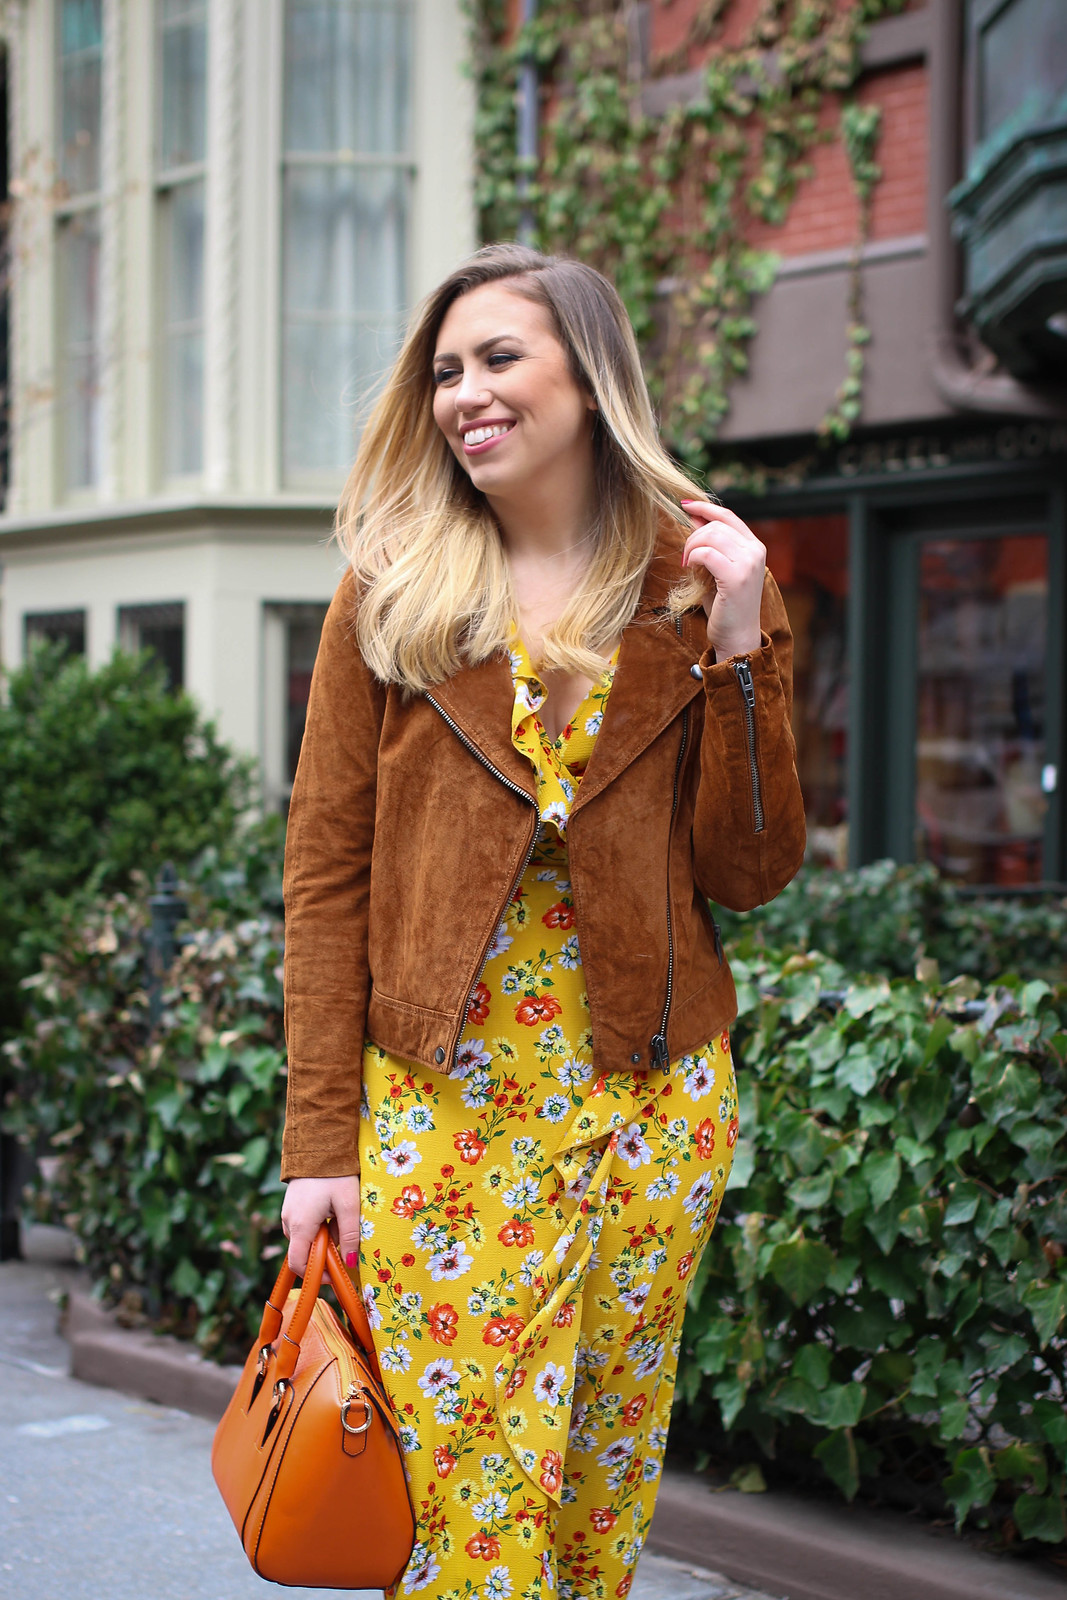 Spring Outfit BLANK NYC Cinnamon Suede Moto Jacket Yellow Floral Wrap Dress Outfit